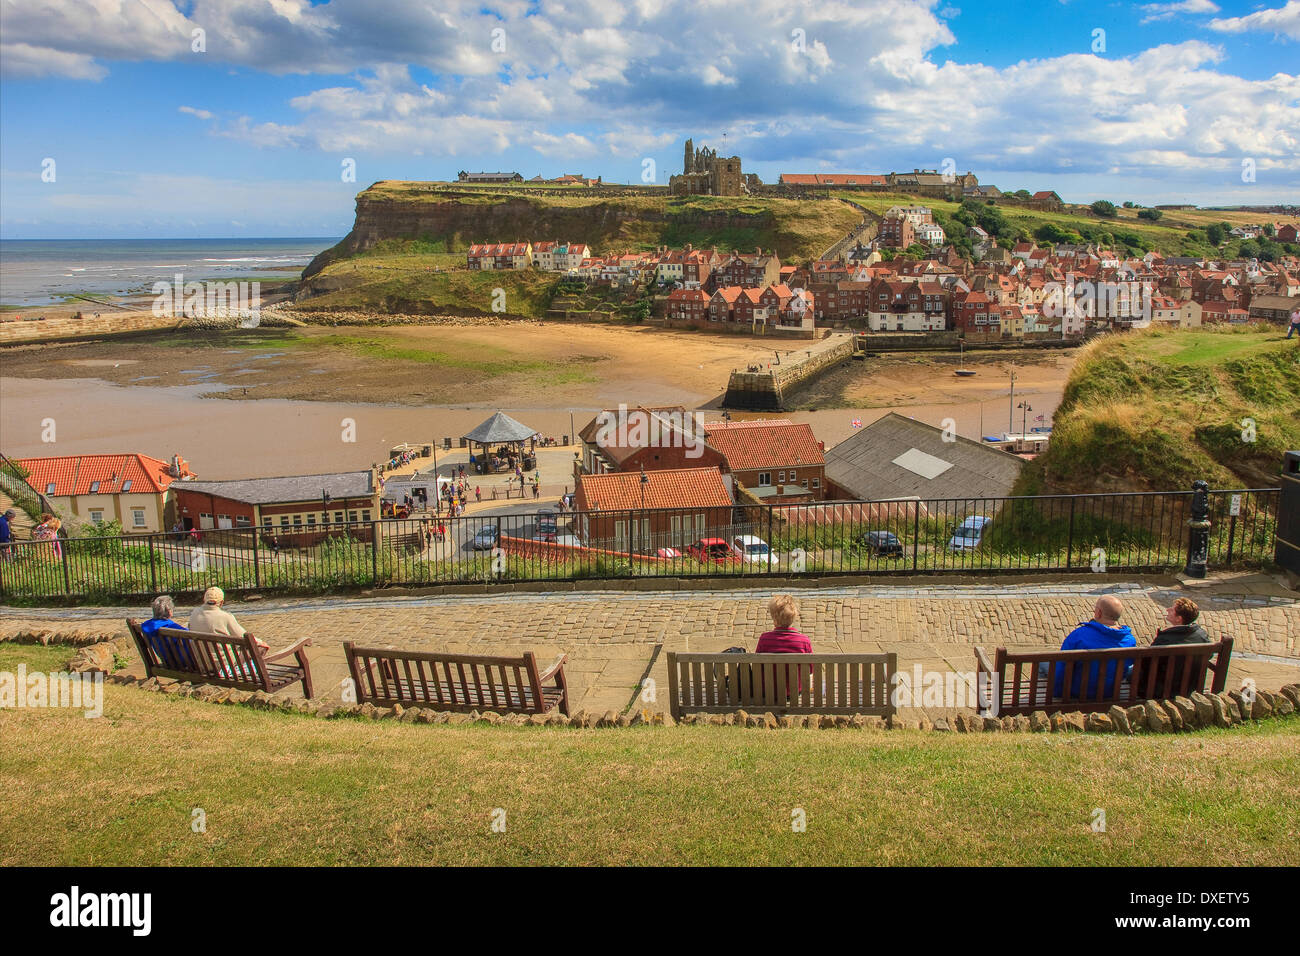 N Yorkshire Stock Photos & N Yorkshire Stock Images - Alamy